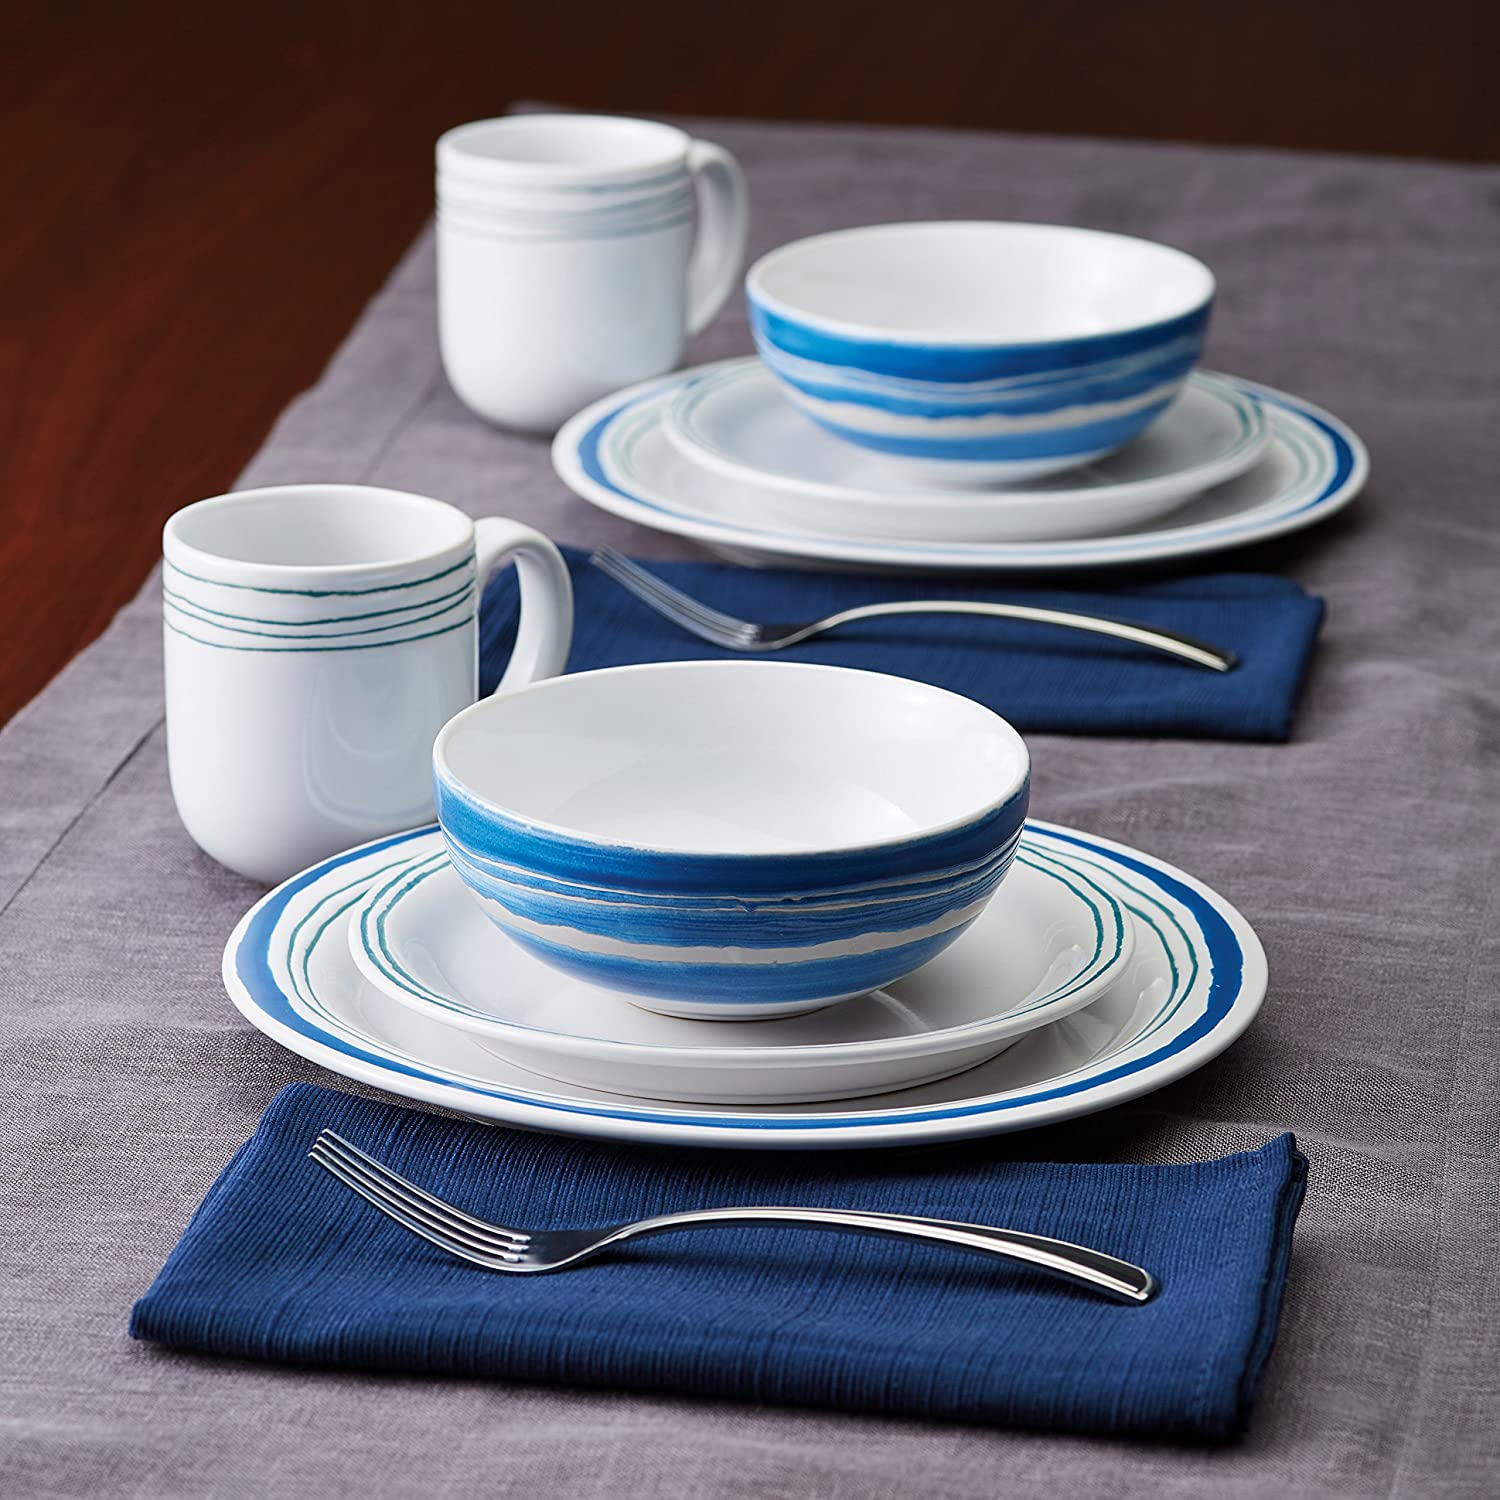 Rachael Ray Brushstrokes Stoneware Dinnerware Set, 16-Piece, Blue Aqua